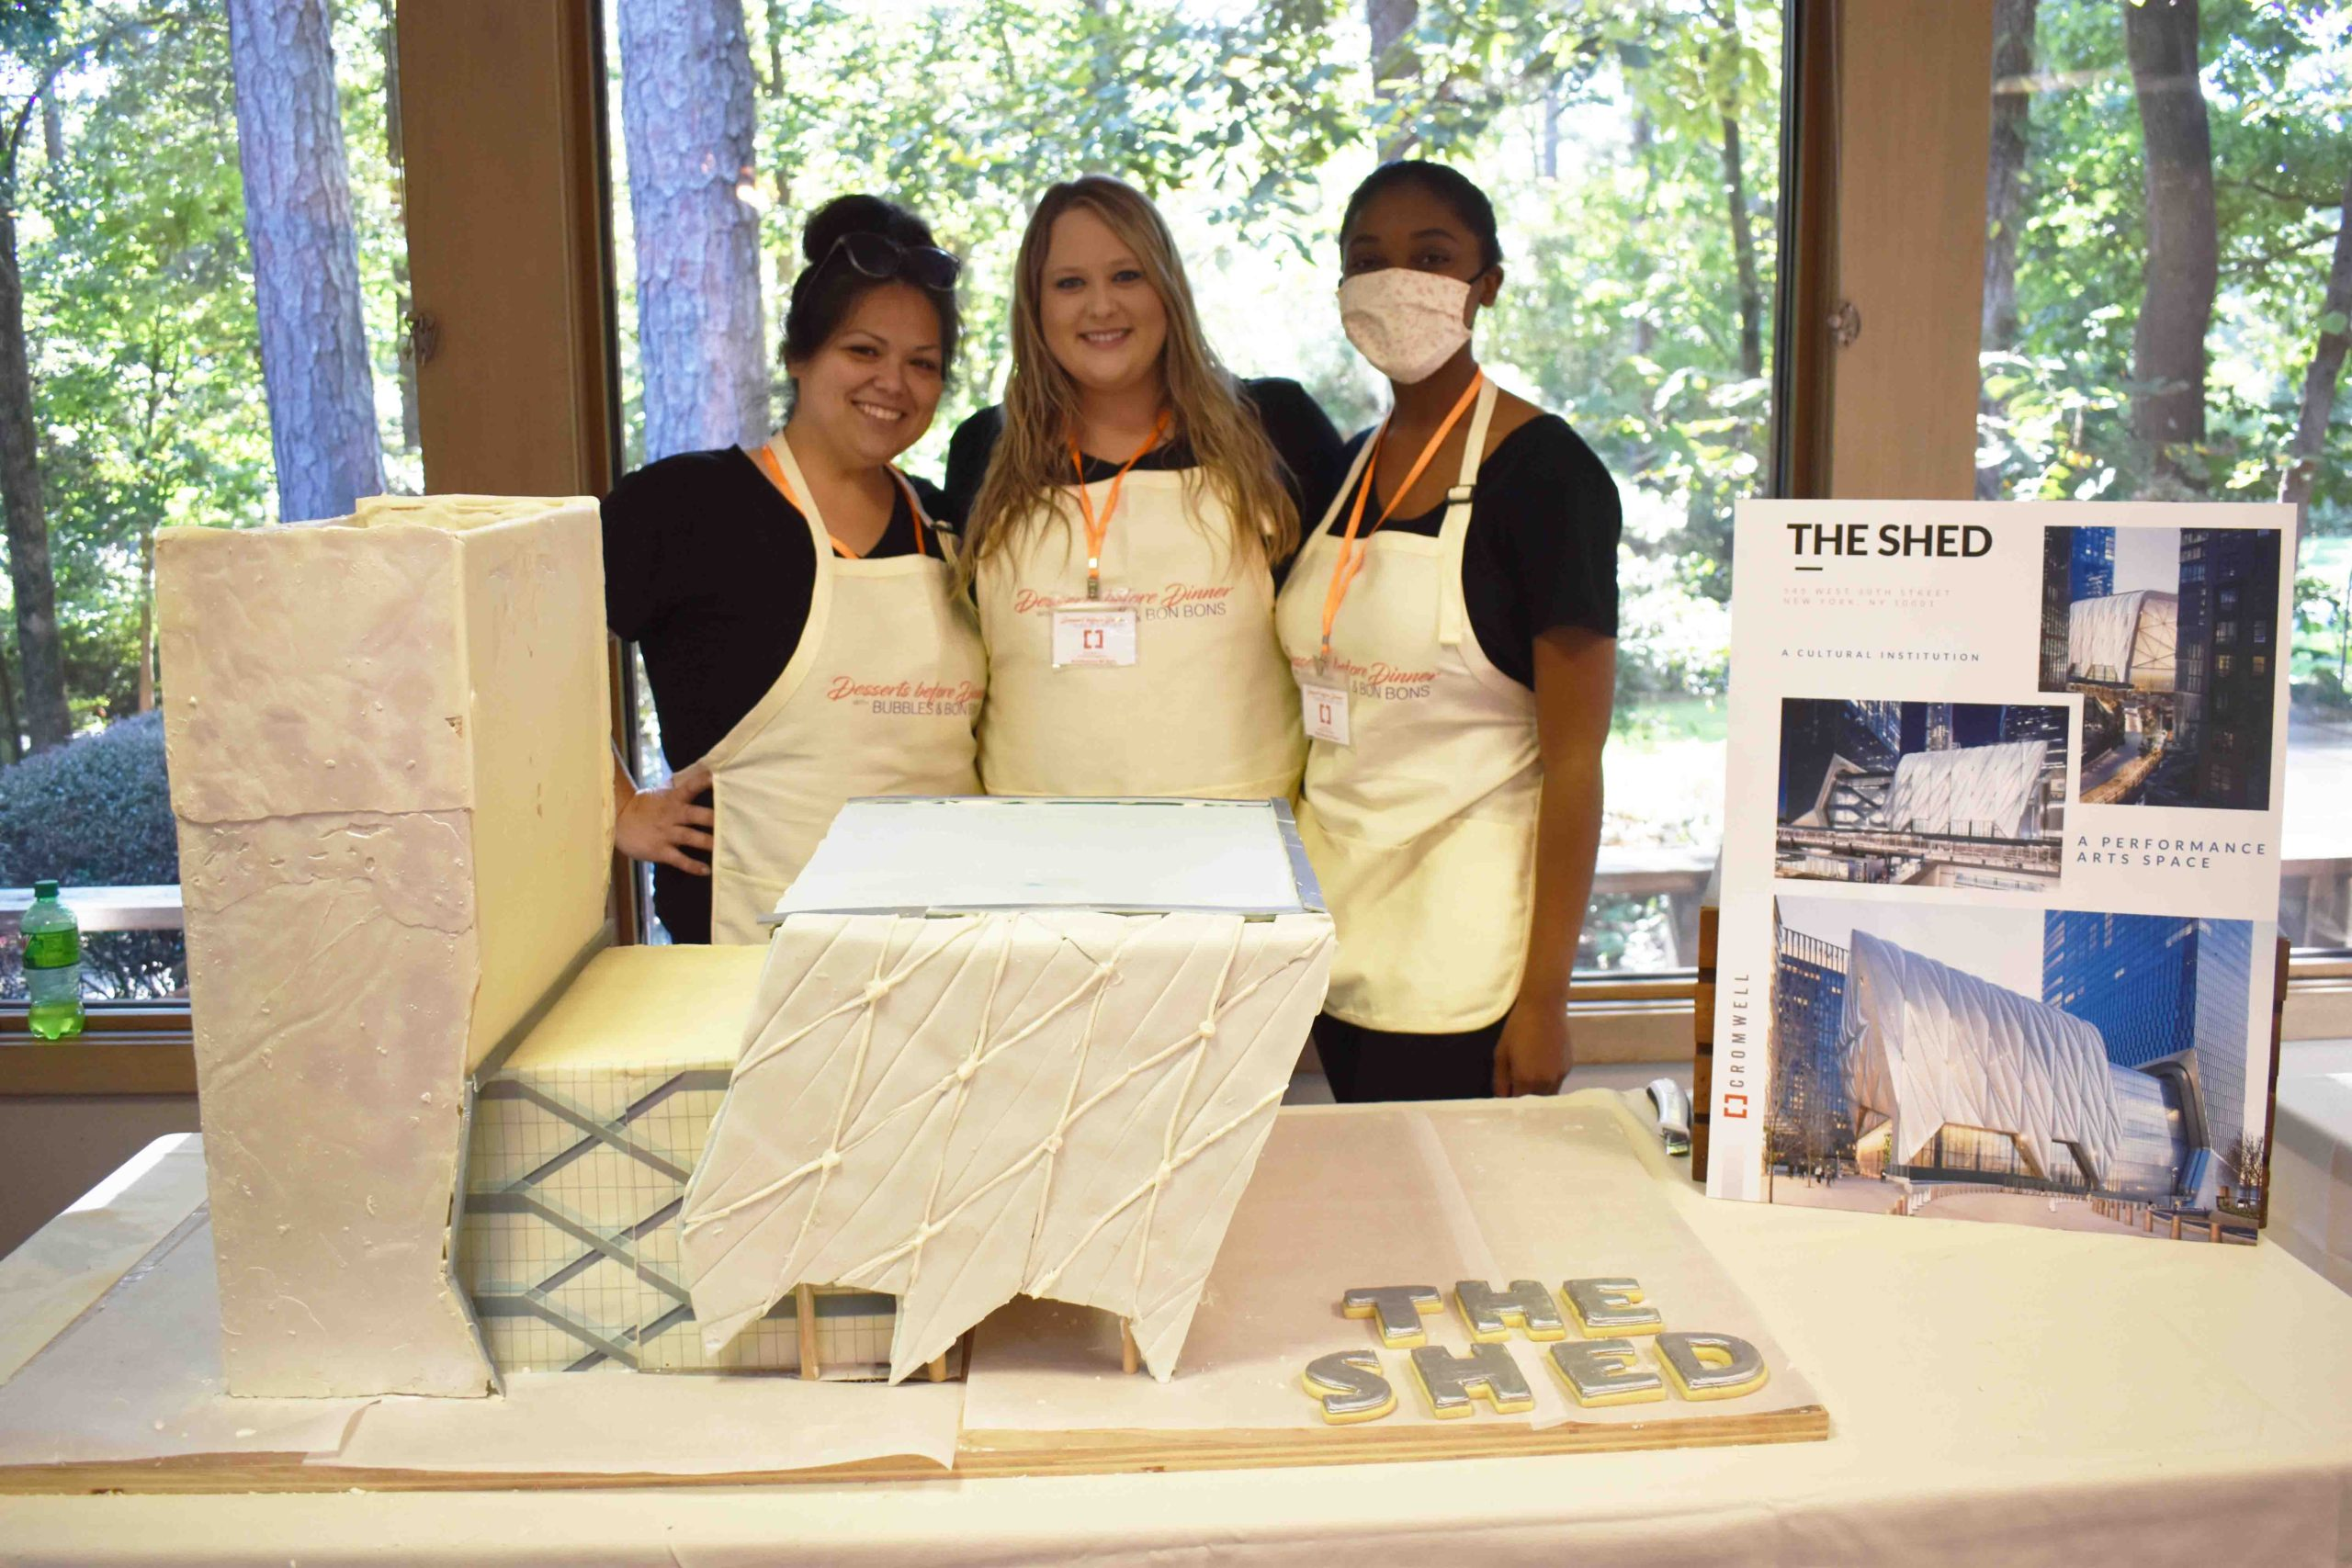 Jacinda Gregory, Emily Hill, Amber Banks – Cromwell Architects stand with entry 'The Shed'